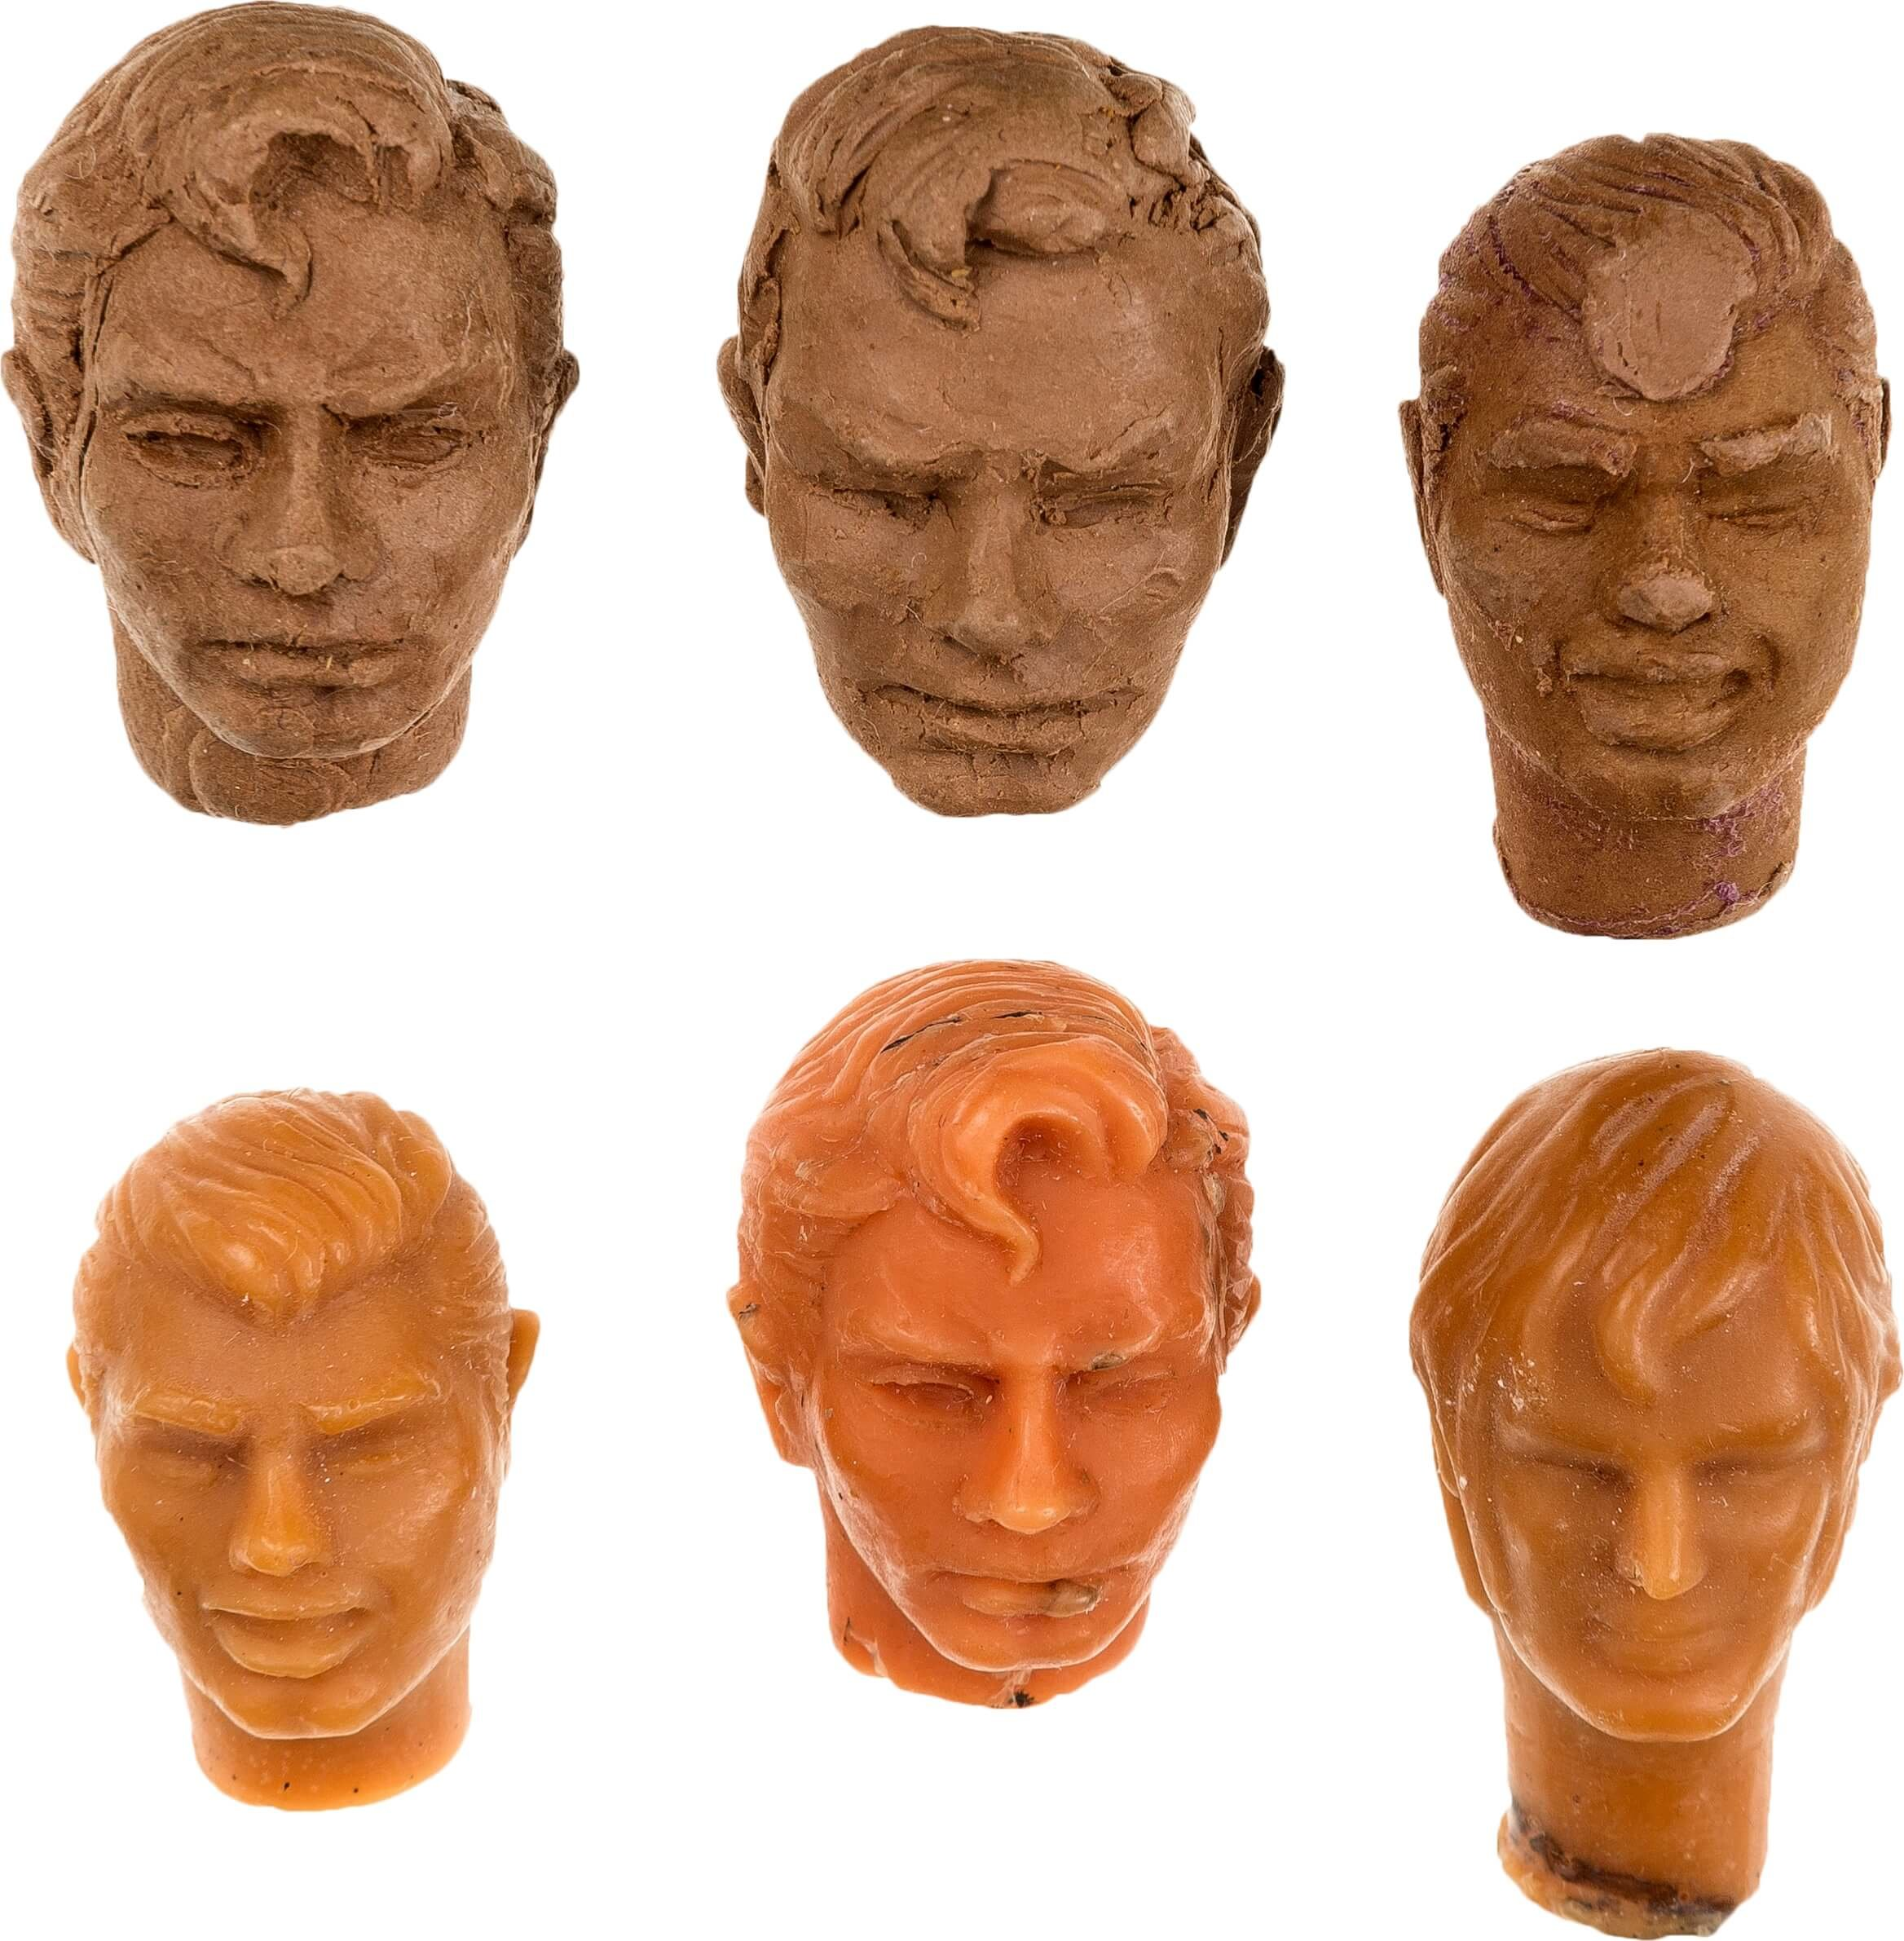 Original mego head sculpt prototype for Superman and Aquaman from the Mego World's Greatest Superheroes.